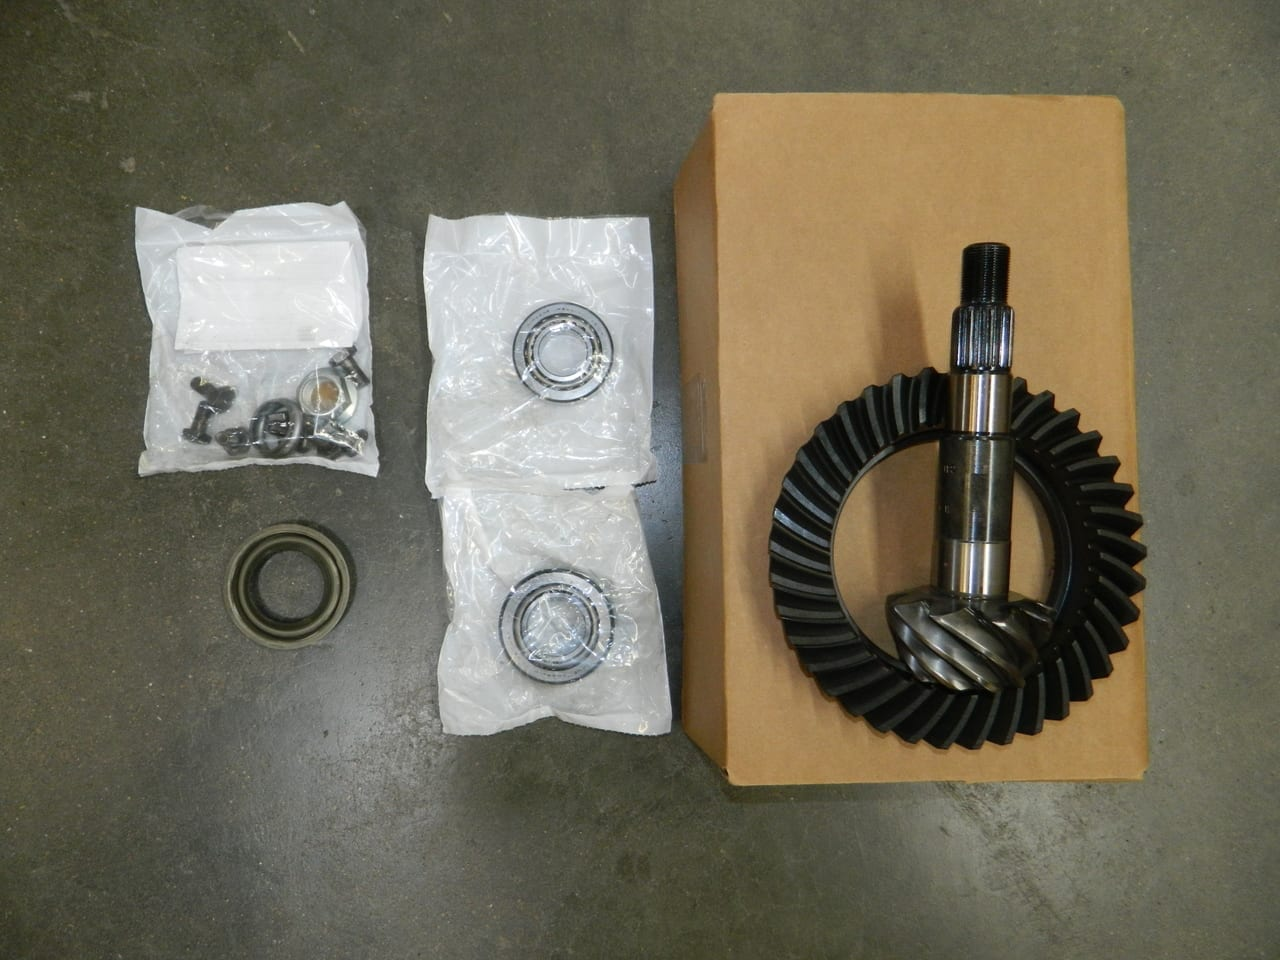 Dana 35 Jeep Wrangler 410 411 4:10 4:11 Gear Set Kit Cherokee XJ YJ TJ Ring & Pinion Gearset